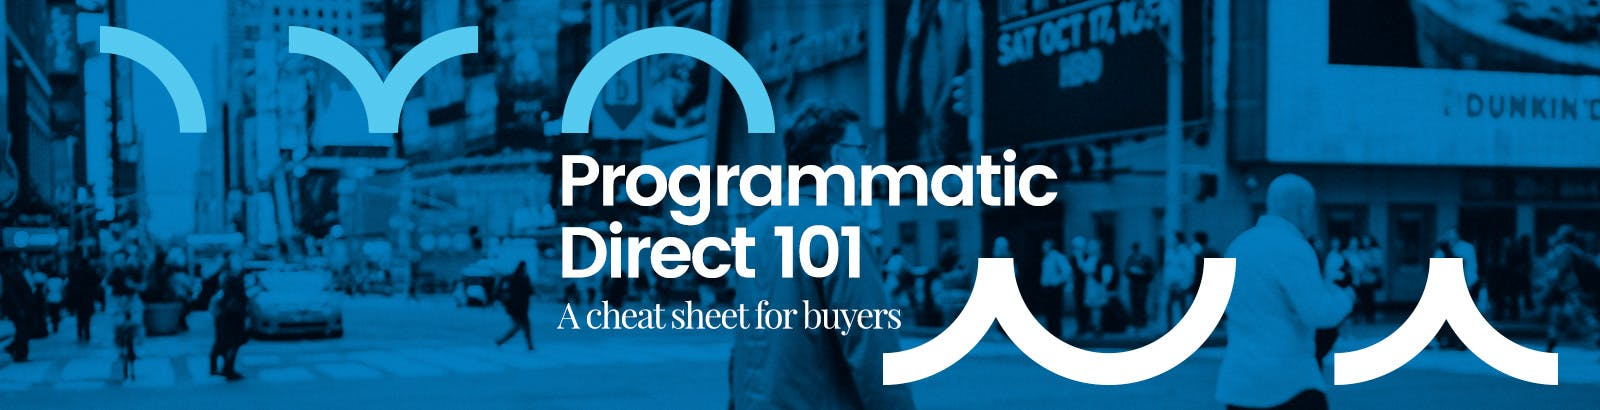 ProgrammaticDirect BlogGraphic - OpenX Programmatic Direct 101 for Buyers